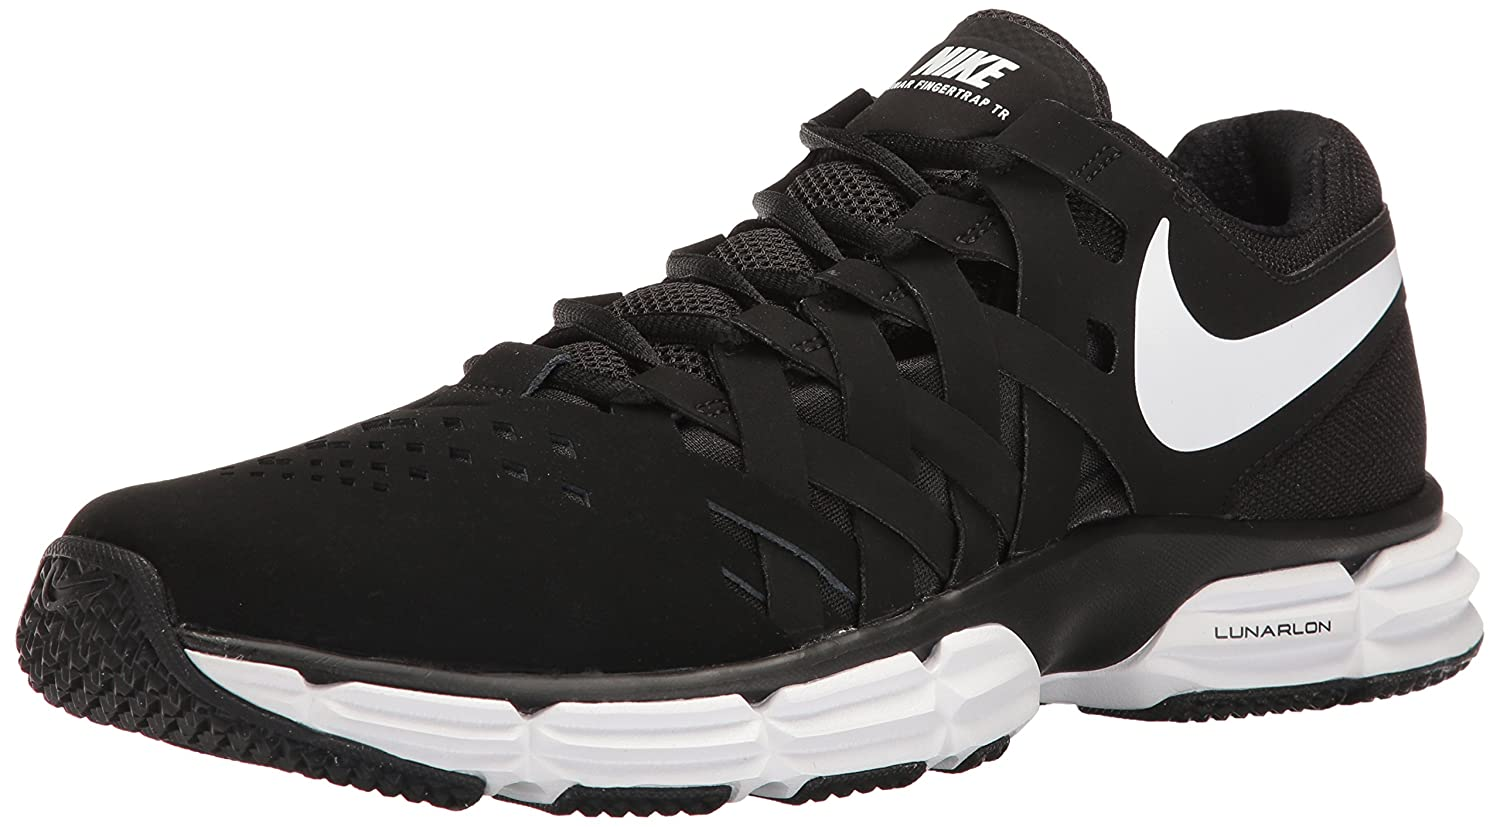 NIKE Men's Lunar Fingertrap Cross Trainer B01HH8NGH6 10 D(M) US|Black/White - Black